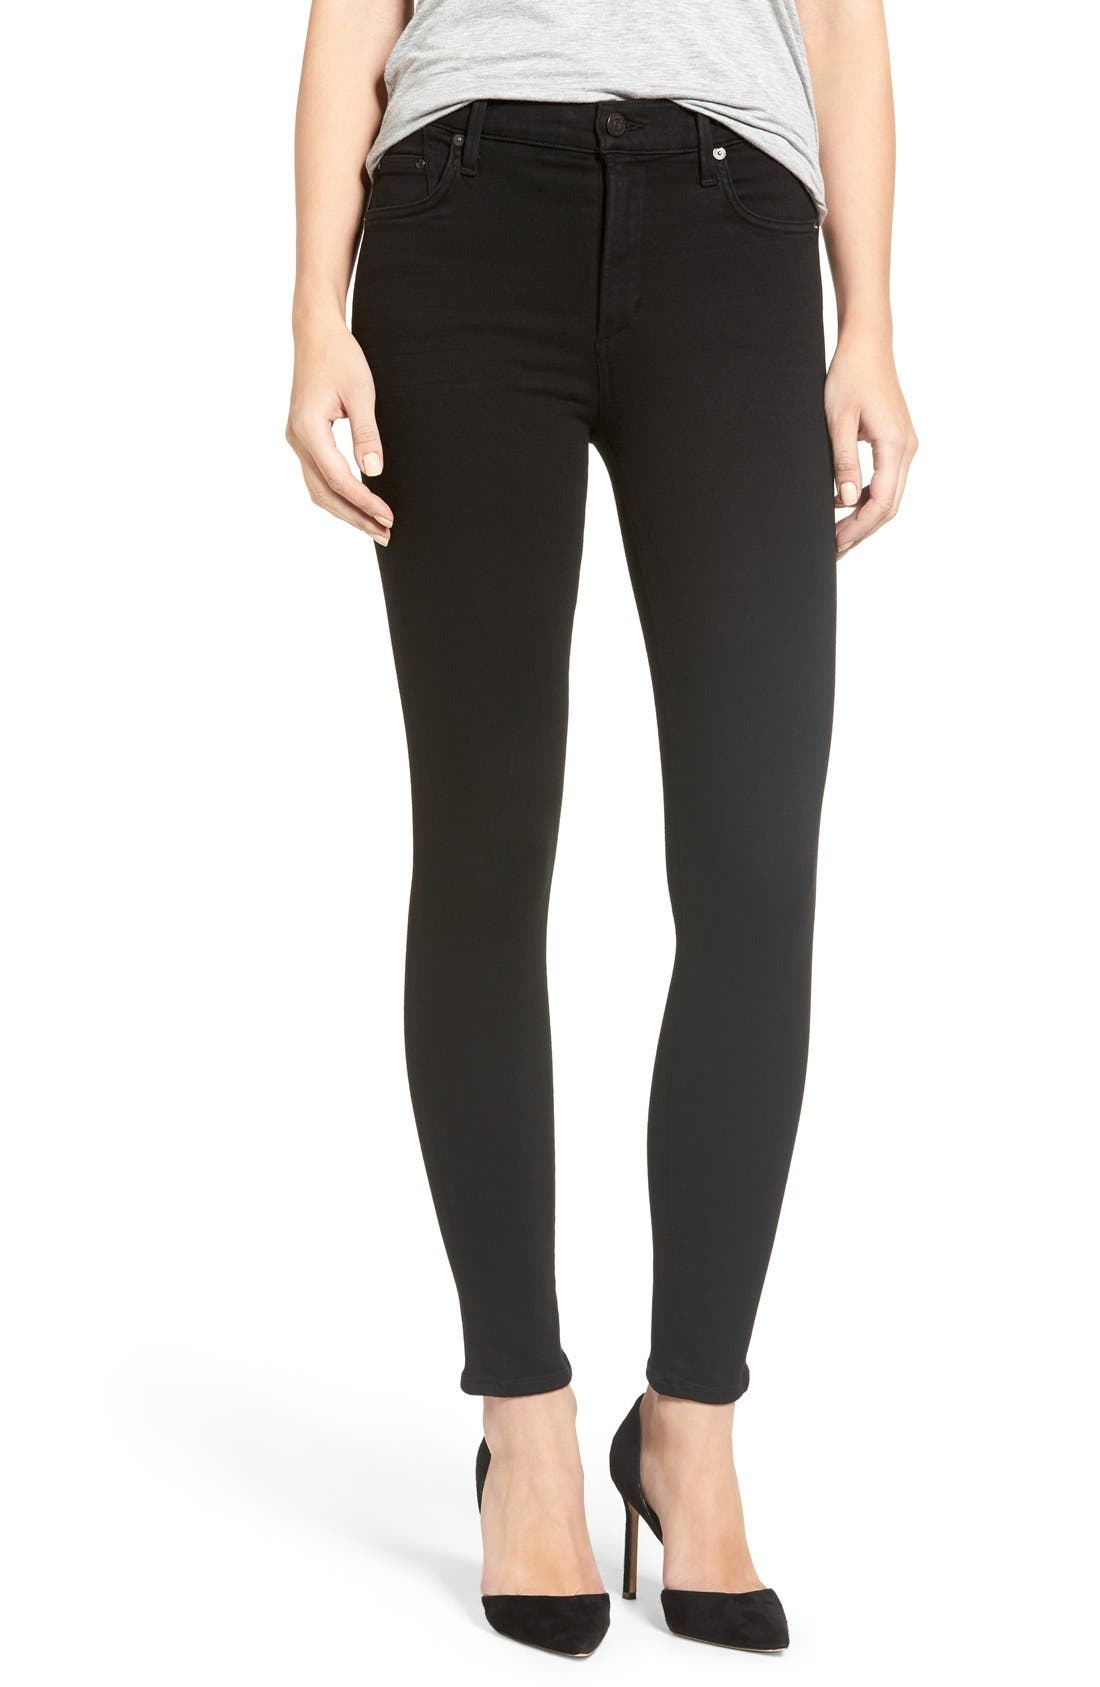 'Rocket' Skinny Jeans,                             Main thumbnail 1, color,                             ALL BLACK